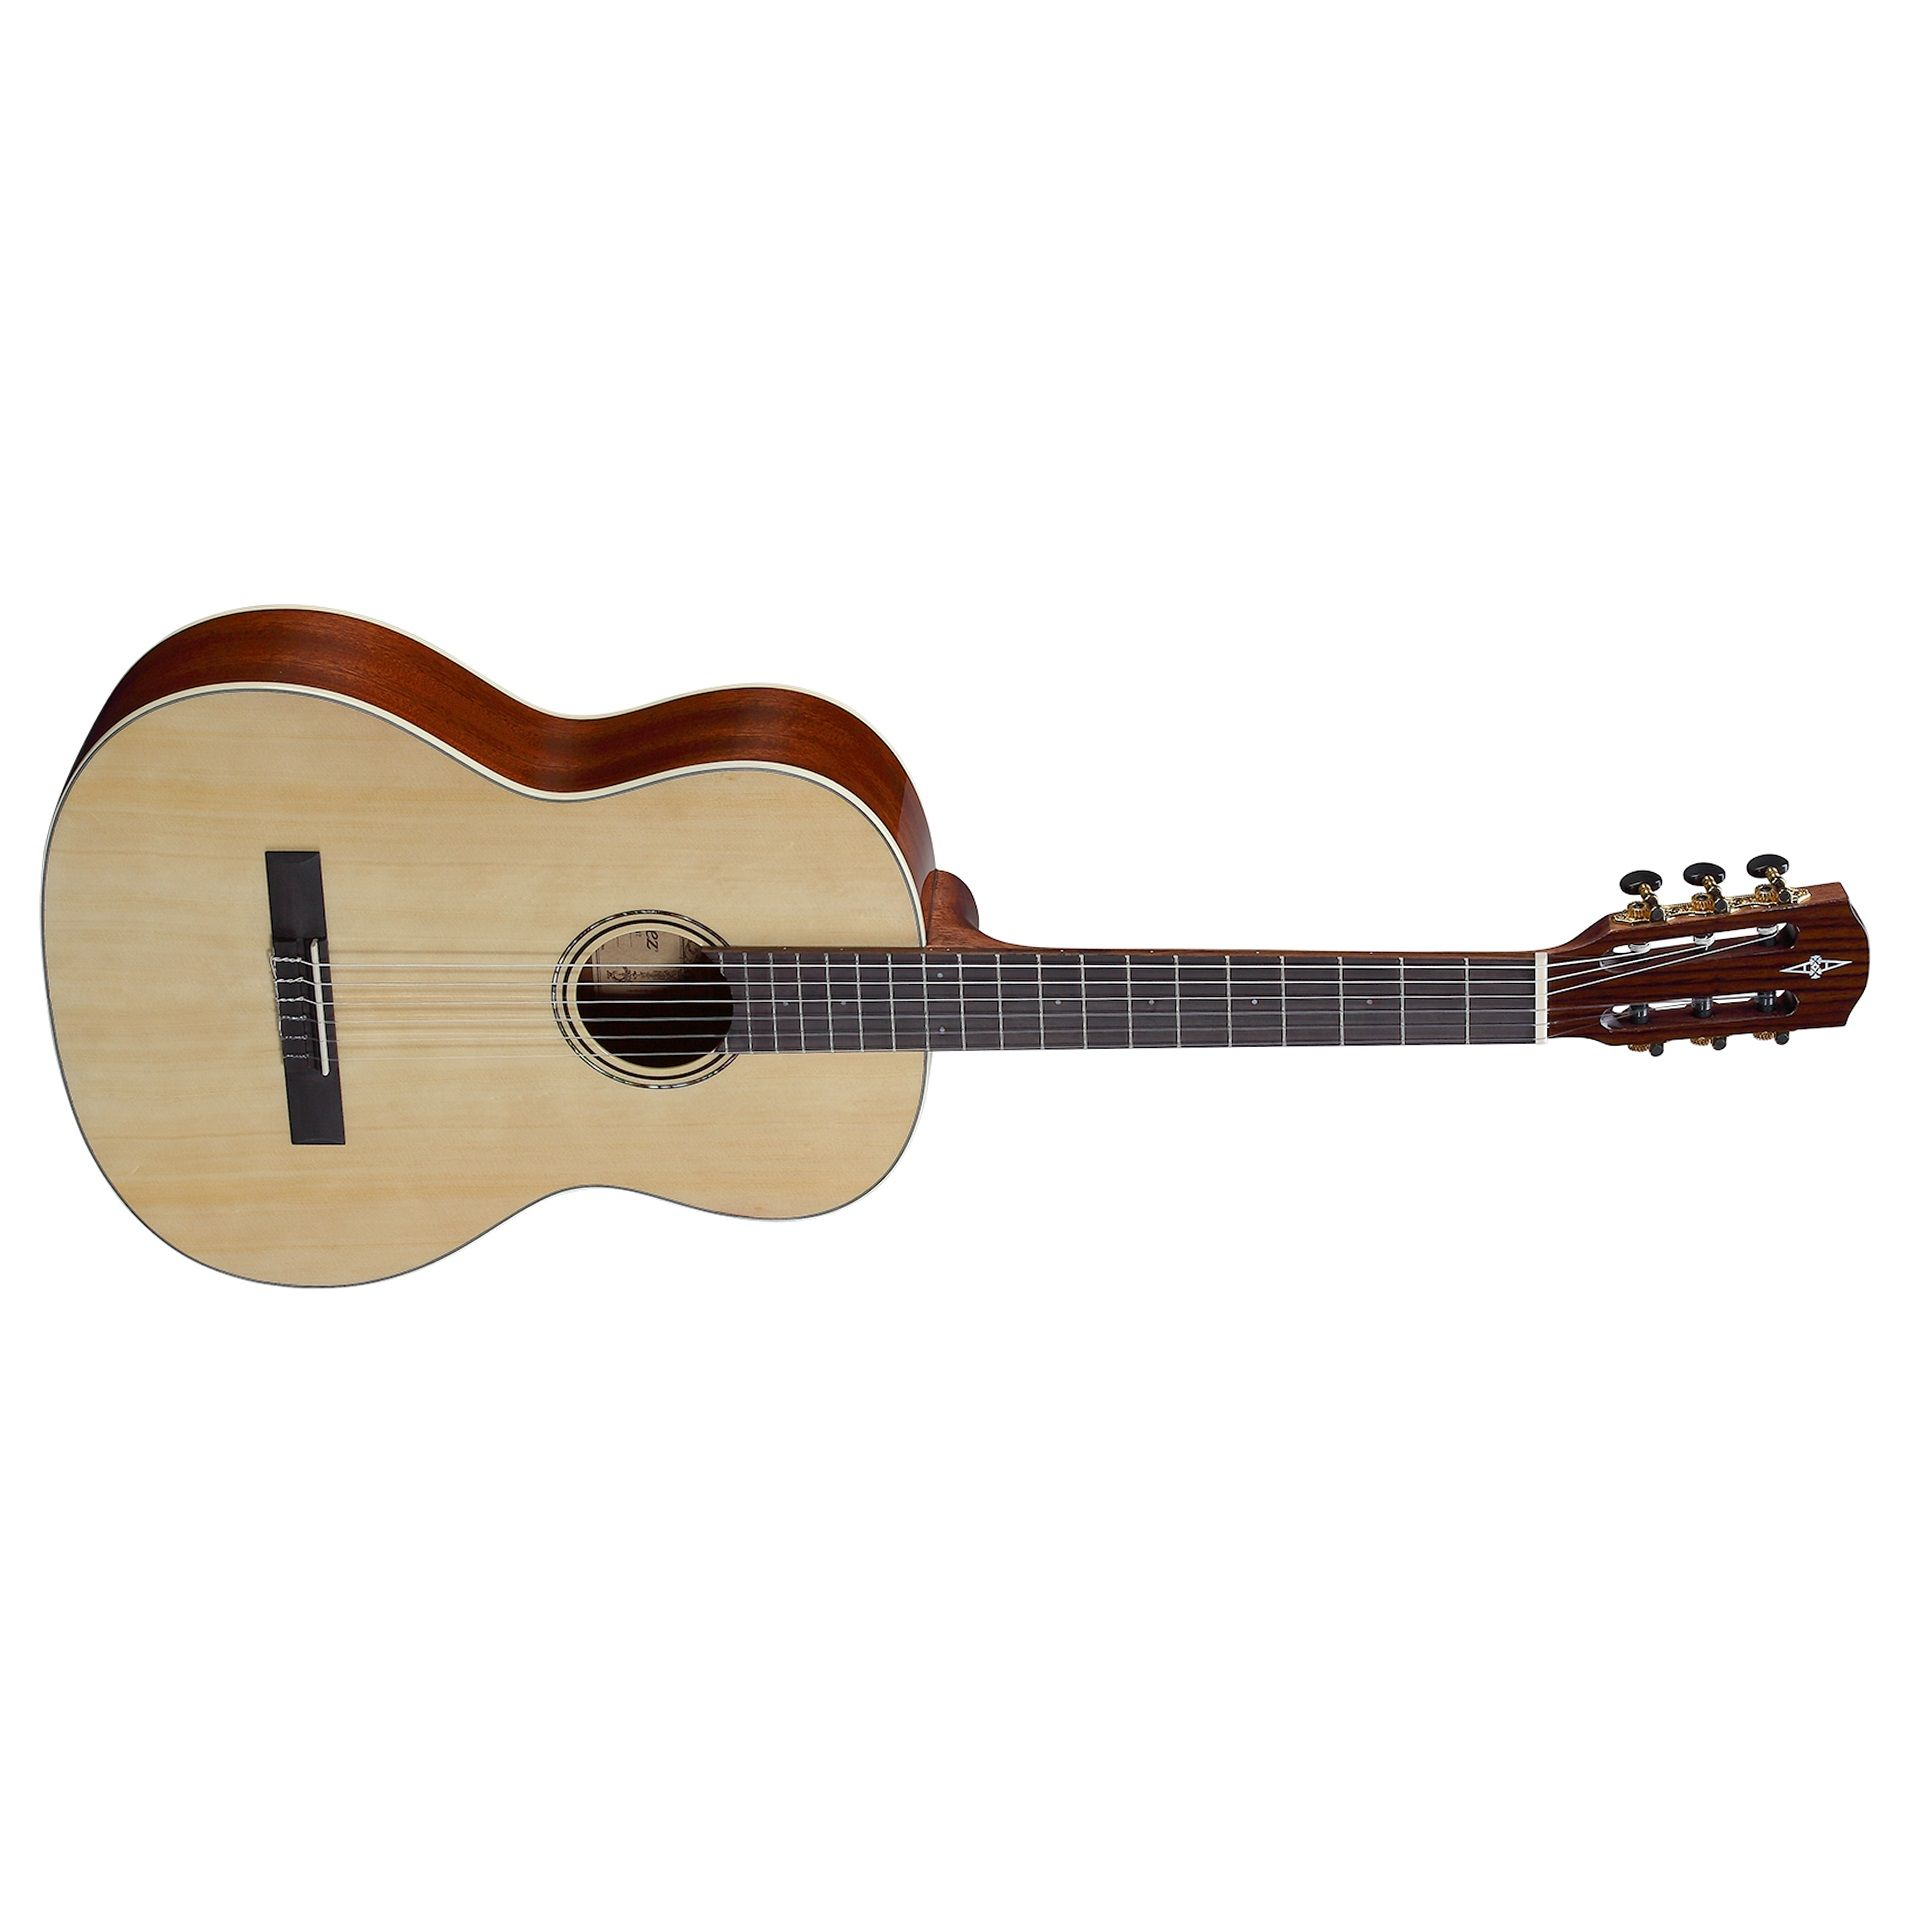 Alvarez RC26 Acoustic Classical Guitar Natural Finish by